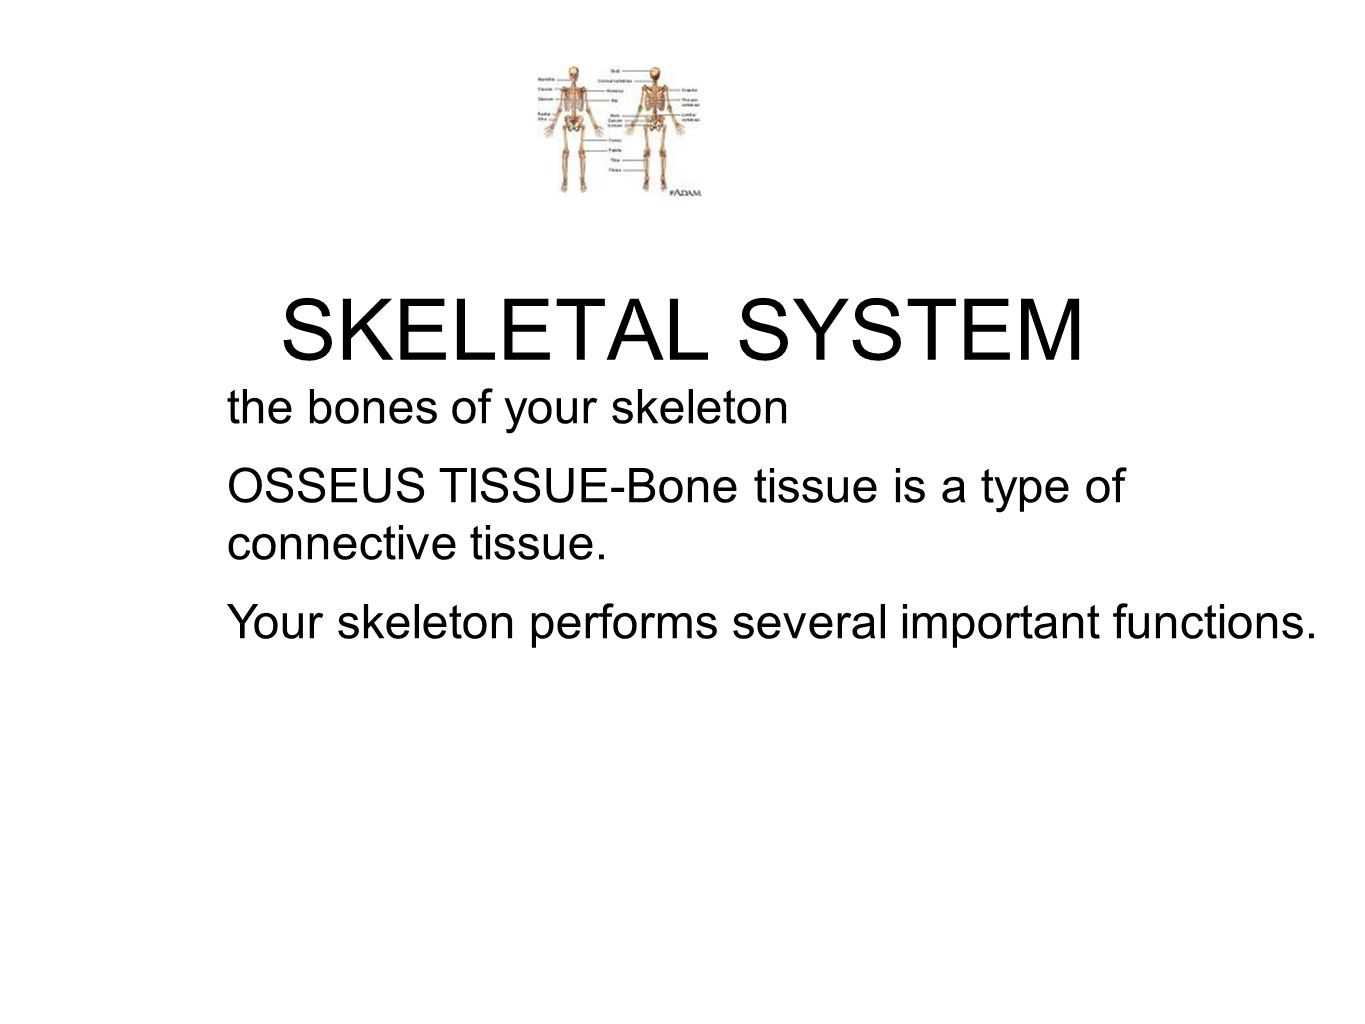 SKELETAL SYSTEM the bones of your skeleton OSSEUS TISSUE-Bone tissue is a type of connective tissue. Your skeleton performs several important function